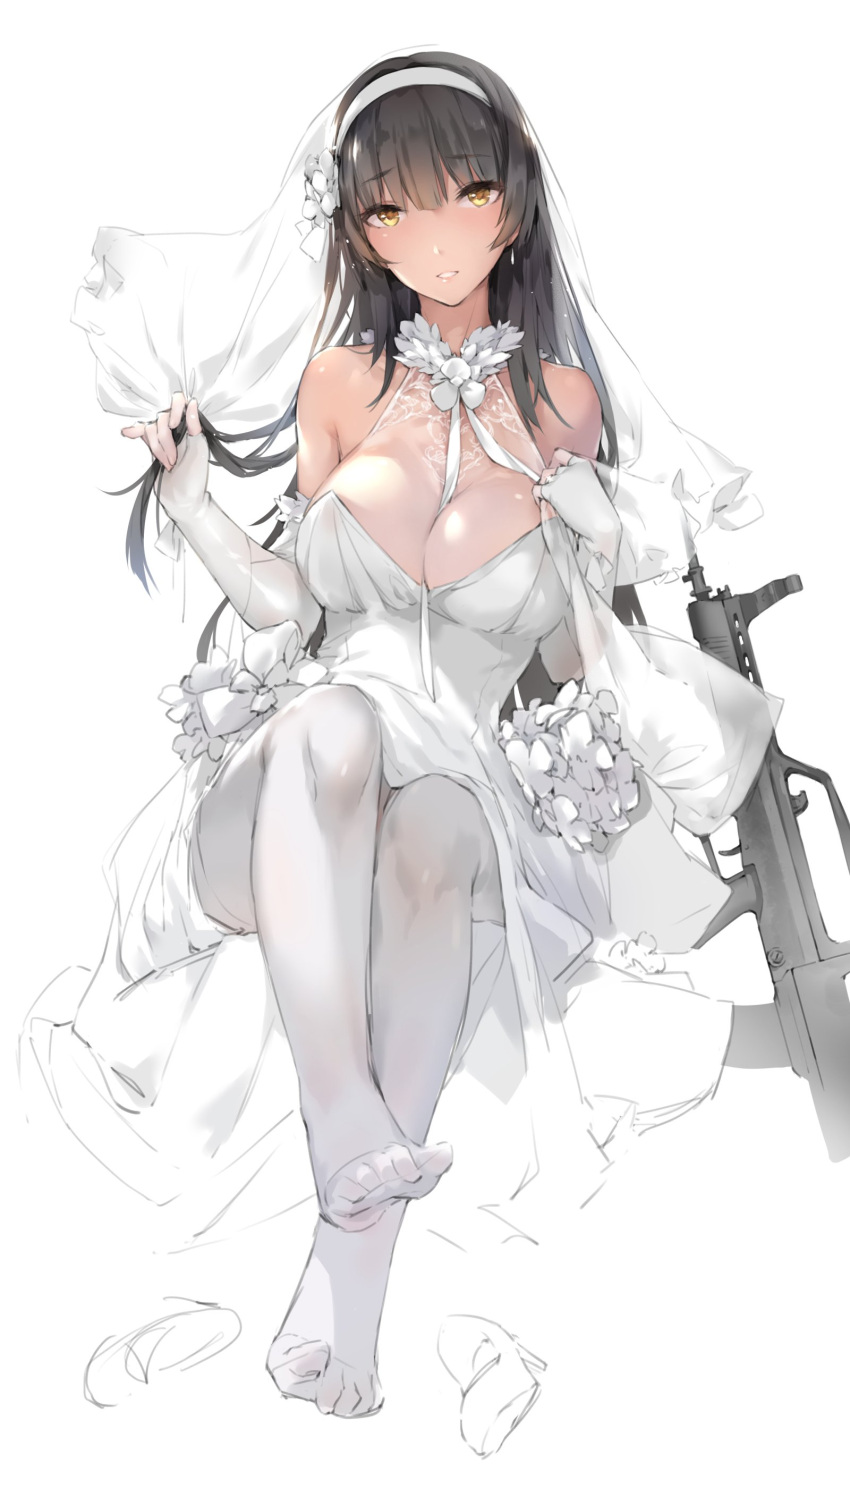 1girl absurdres assault_rifle bangs between_breasts black_hair blunt_bangs breasts bridal_veil bullpup cleavage dress elbow_gloves fingerless_gloves flower full_body girls_frontline gloves gun hair_flower hair_ornament hairband highres holding holding_hair jewelry large_breasts long_hair looking_at_viewer no_shoes pantyhose qbz-95 qbz-95_(girls_frontline) rifle ring simple_background sitting solo veil weapon wedding_band wedding_dress white_background white_dress white_gloves white_hairband white_legwear xie_yizhen yellow_eyes